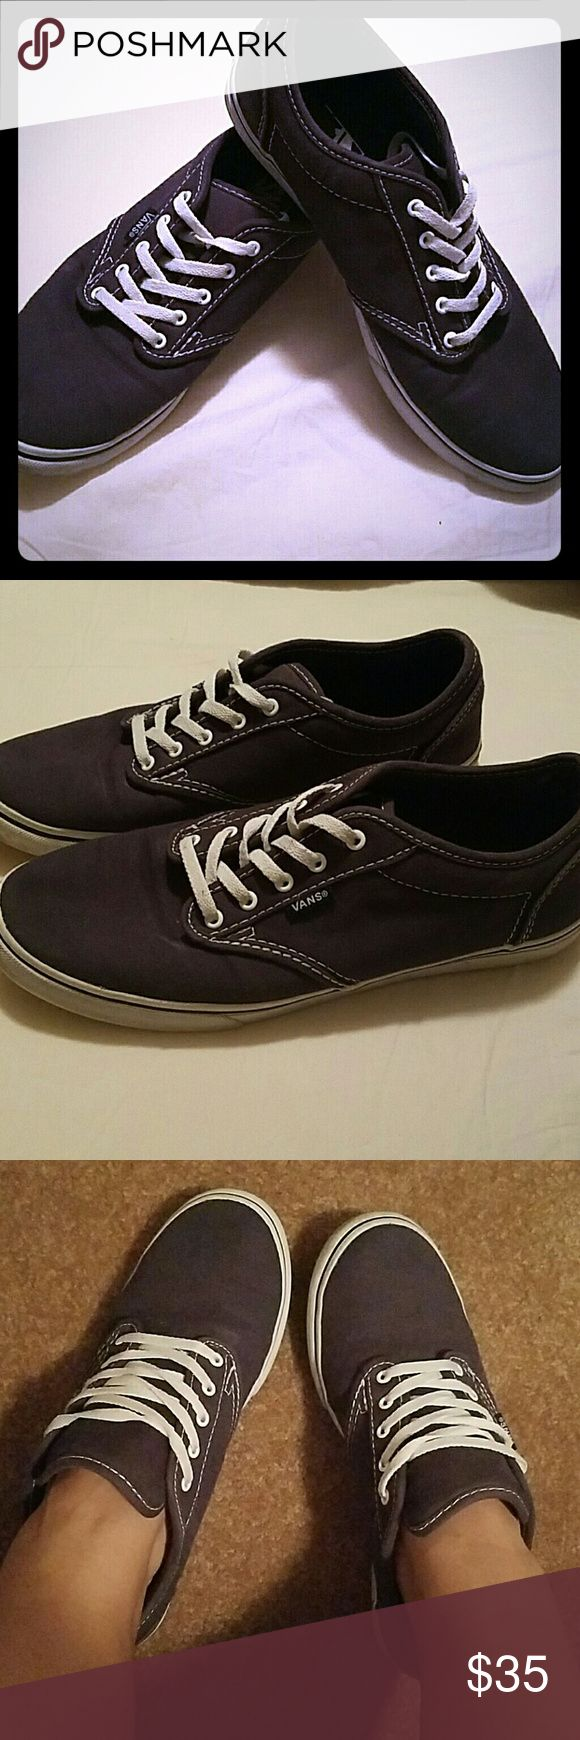 Navy vans Navy and white vans Lightly worn In good condition Very comfortable Vans Shoes Sneakers